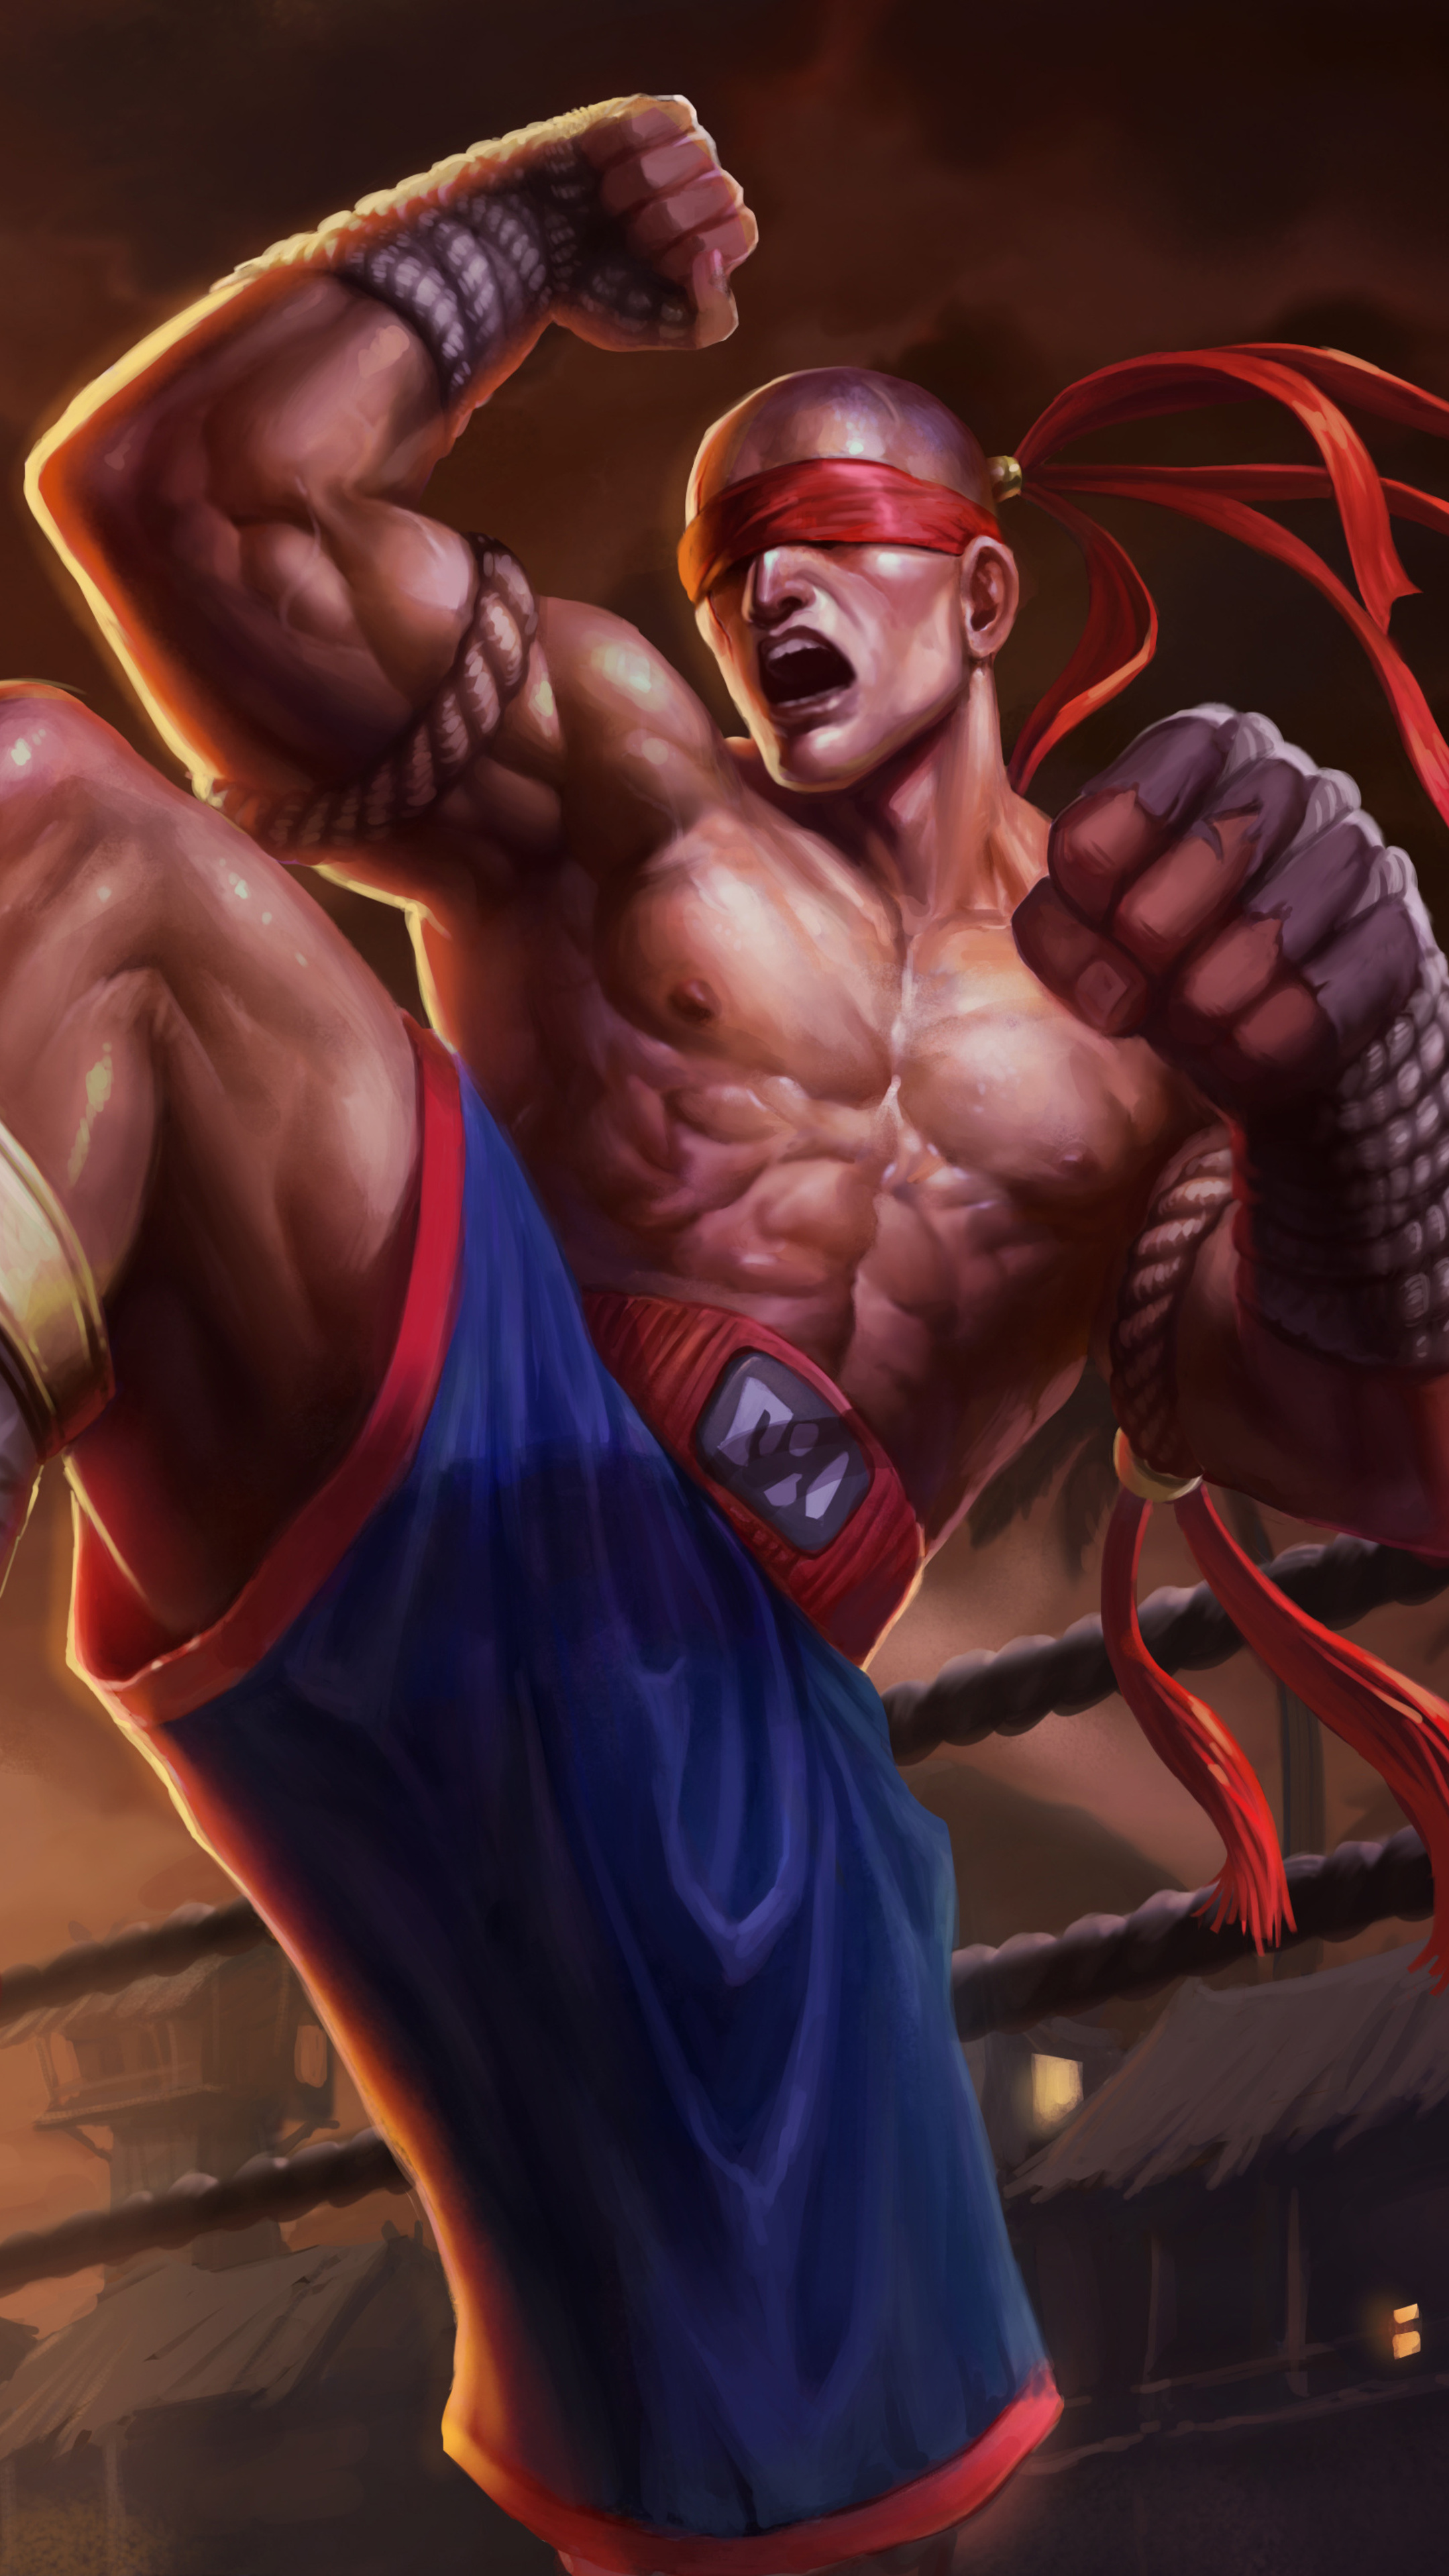 2160x3840 Muay Thai Lee Sin Splash Art 5k Sony Xperia X Xz Z5